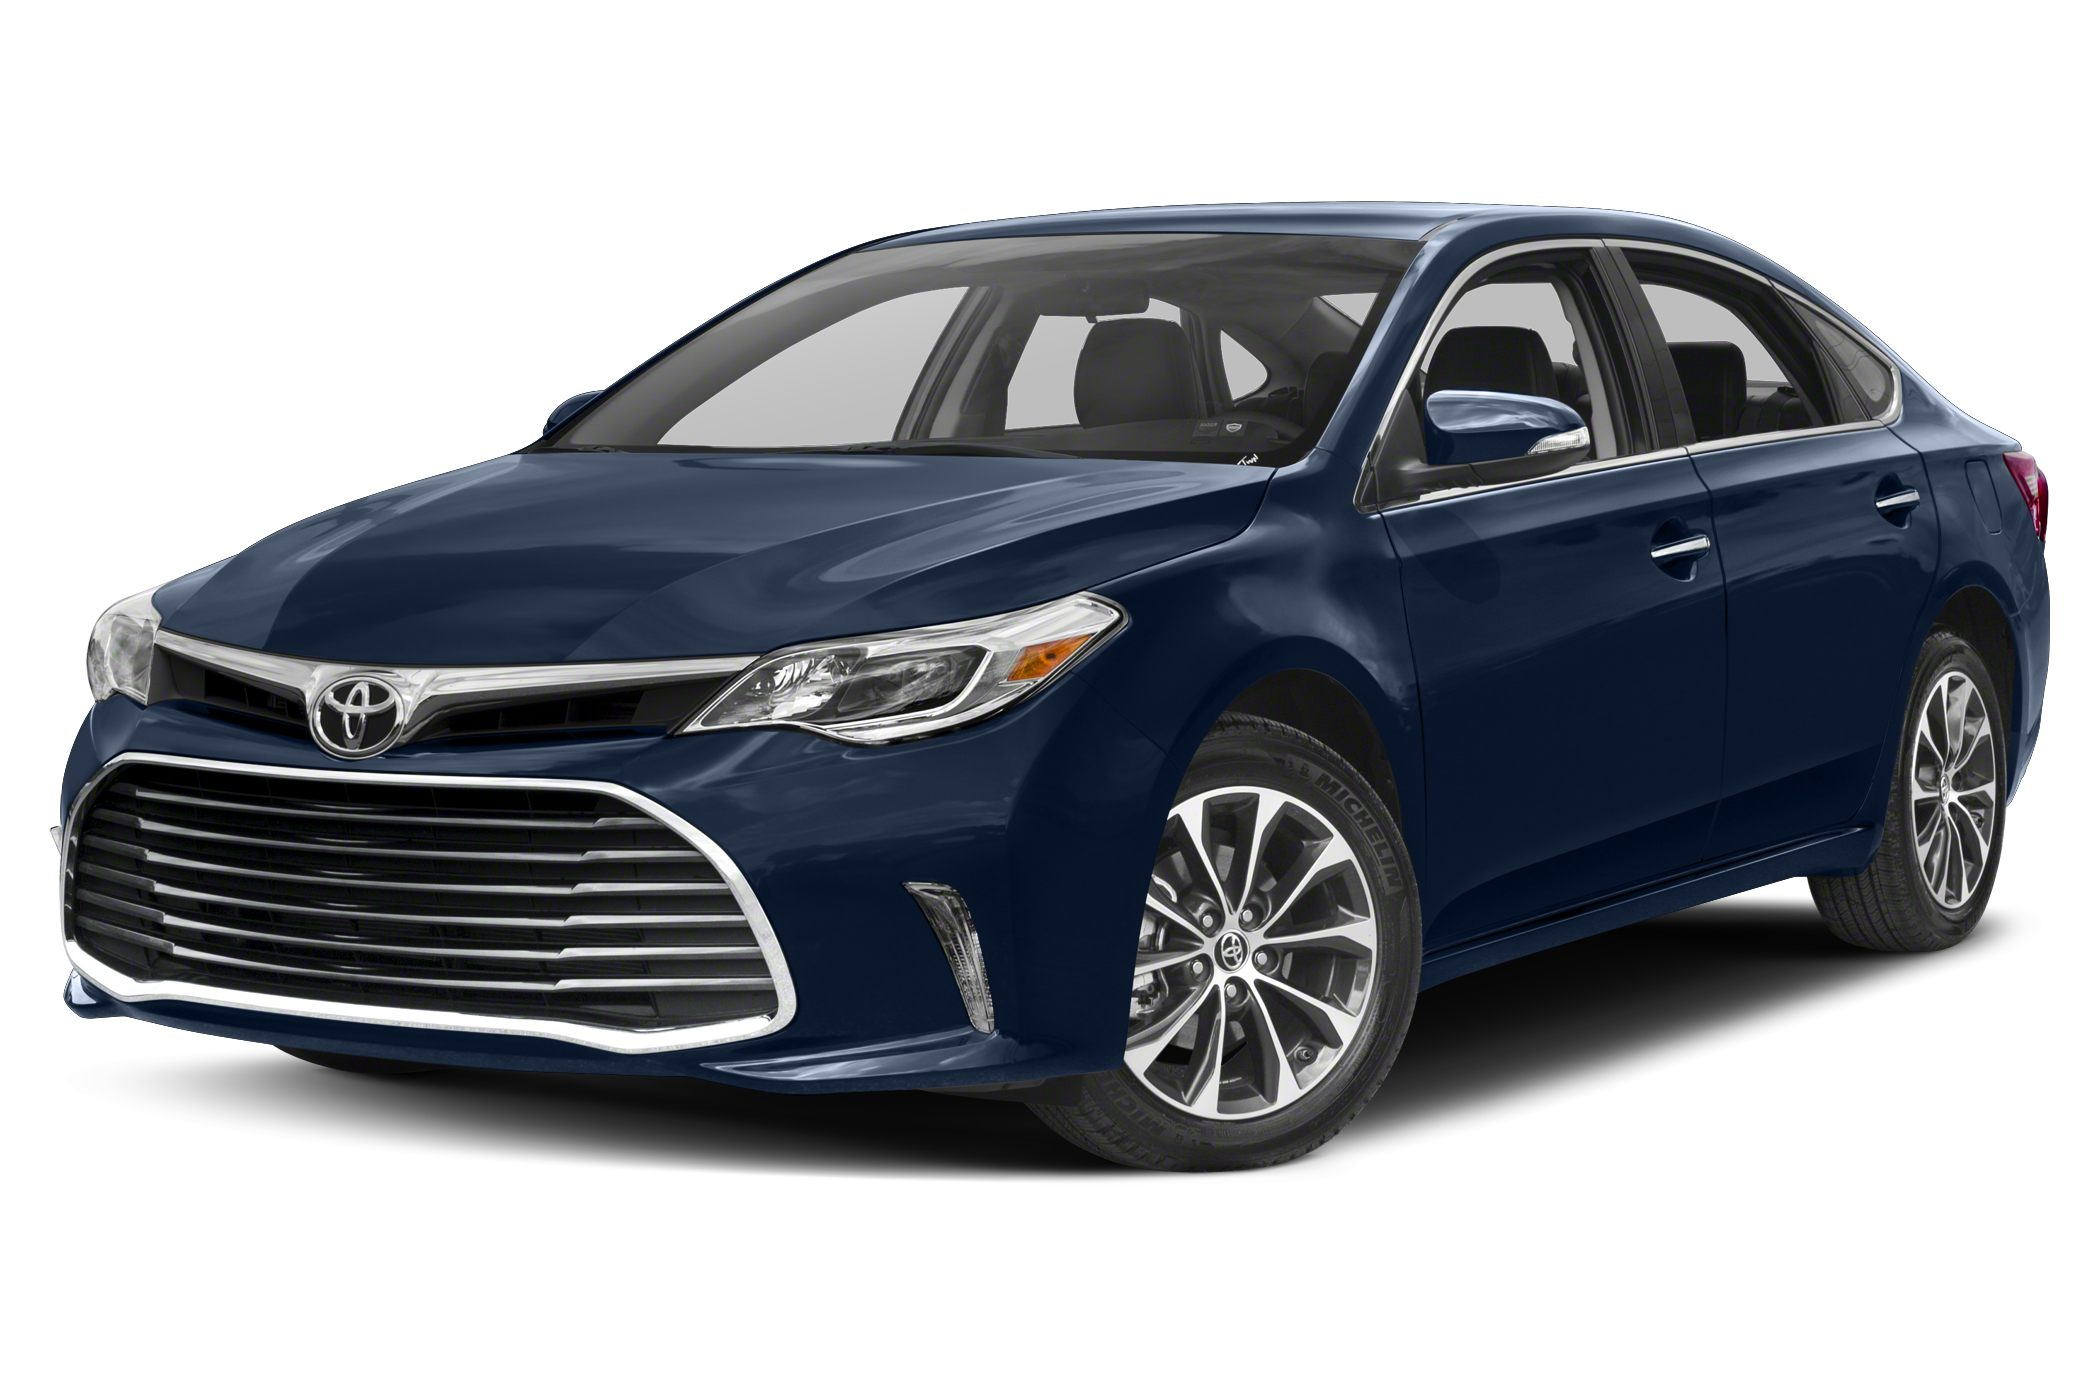 2018 Toyota Avalon XLE Premium New Arrival Priced to sell 4726 below MSRP -Great Gas Mileage-